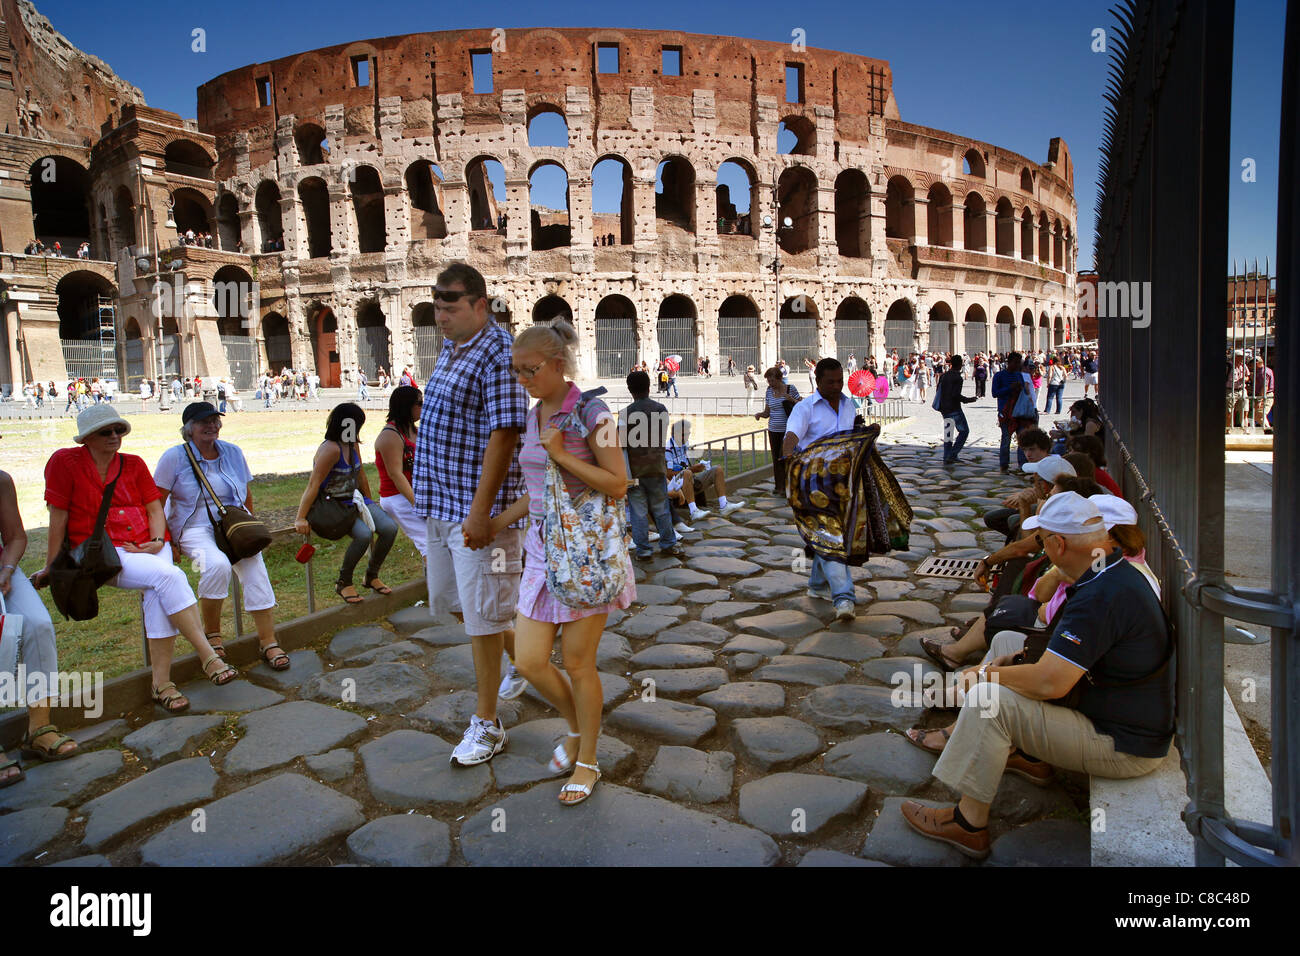 Tourists outside the Colosseum in Rome, Italy. - Stock Image